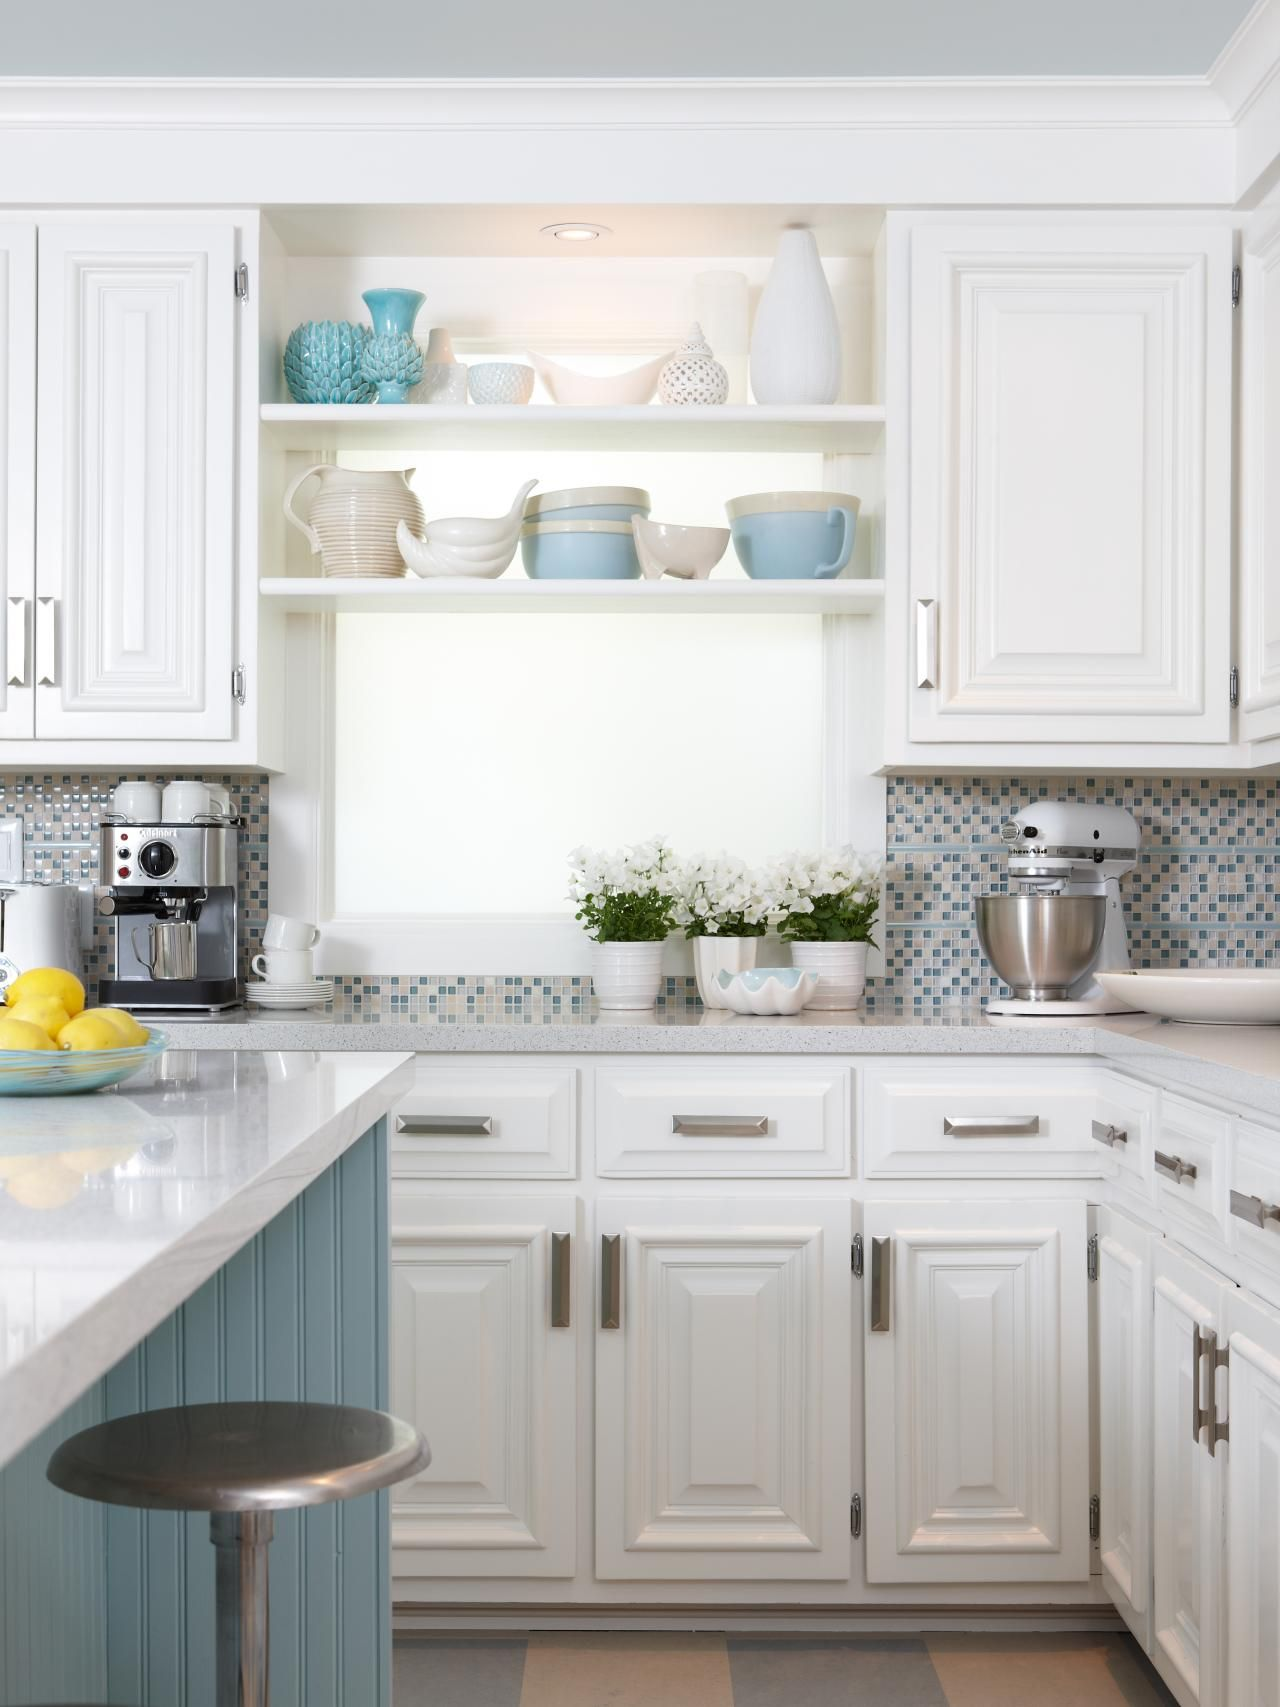 Light Blue Kitchen This White Cottage Kitchen Is A Cozy Space With Light Blue Accents